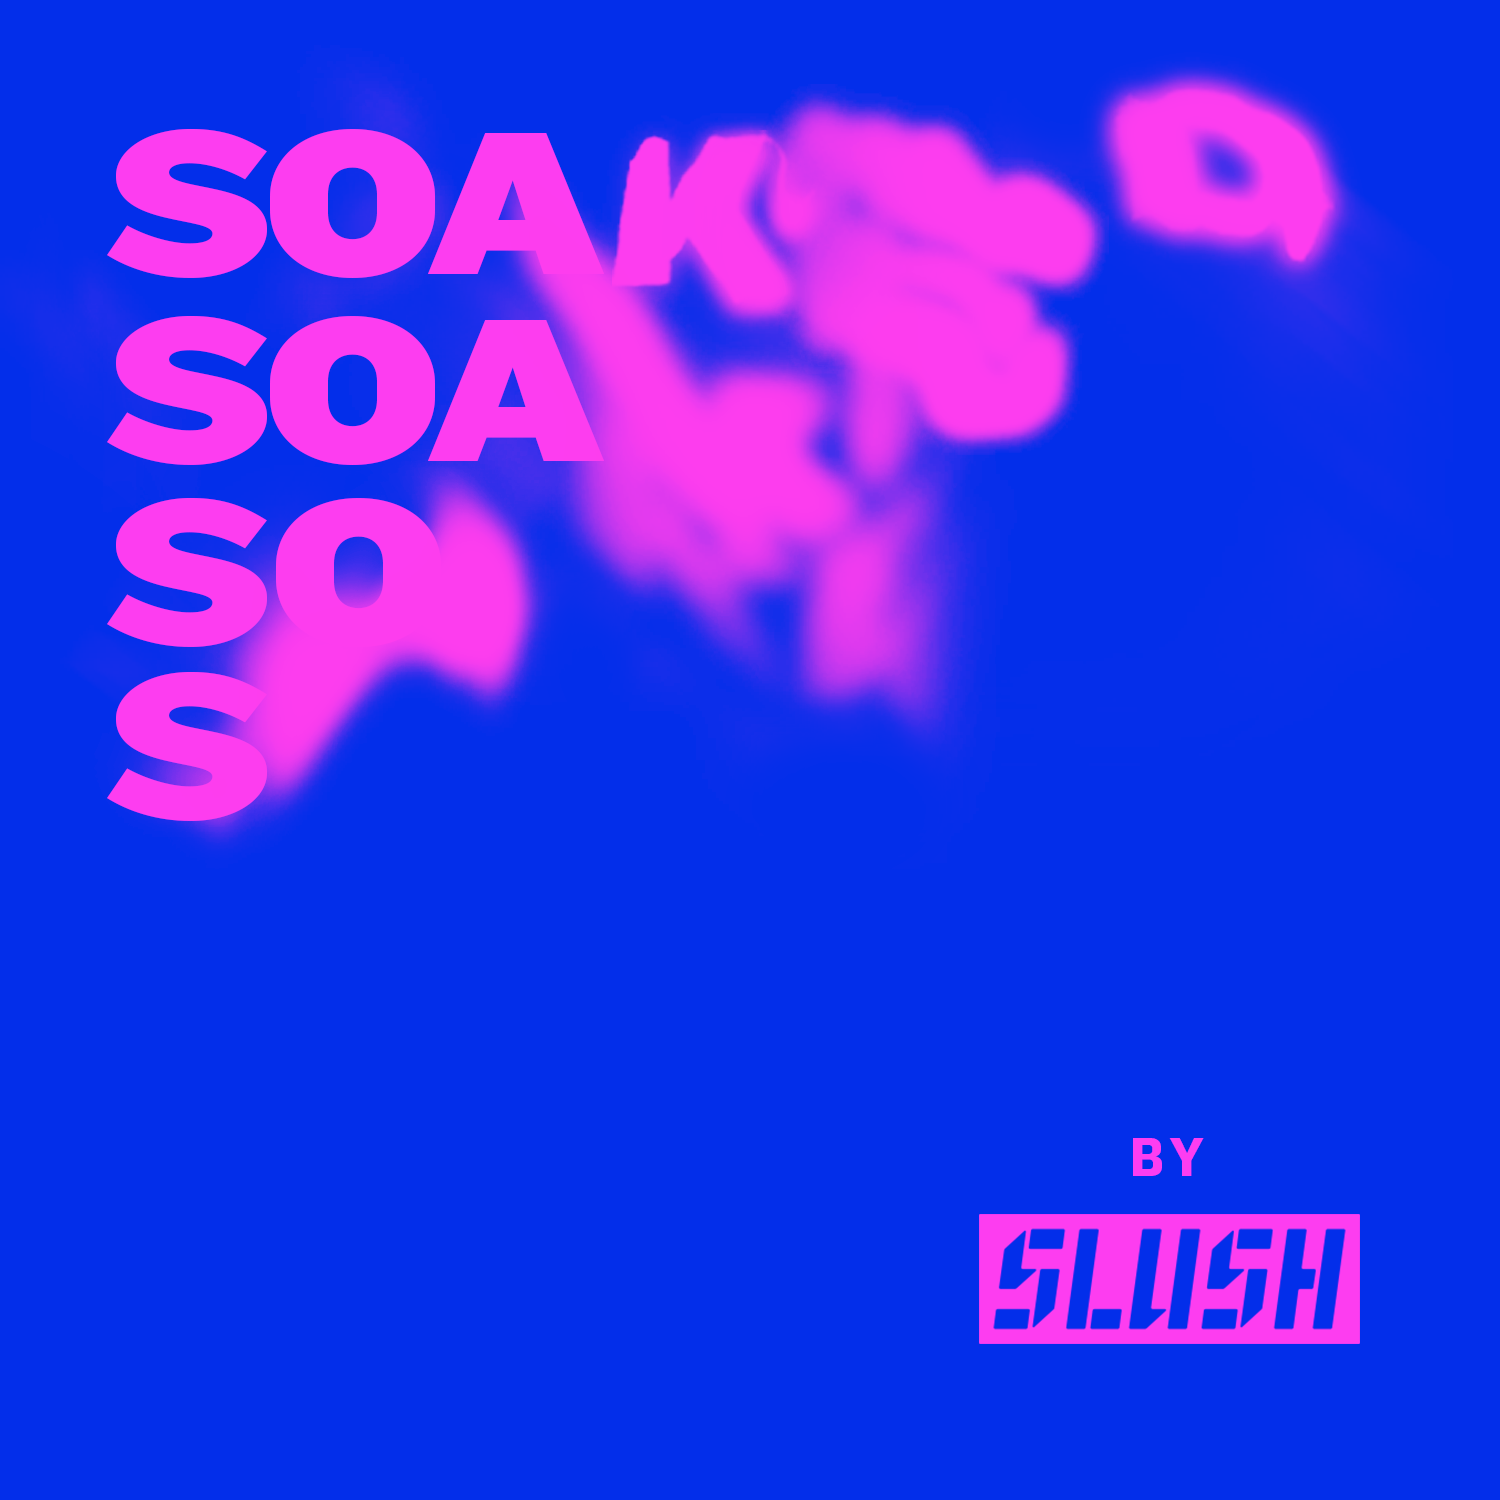 Artwork for podcast Soaked by Slush